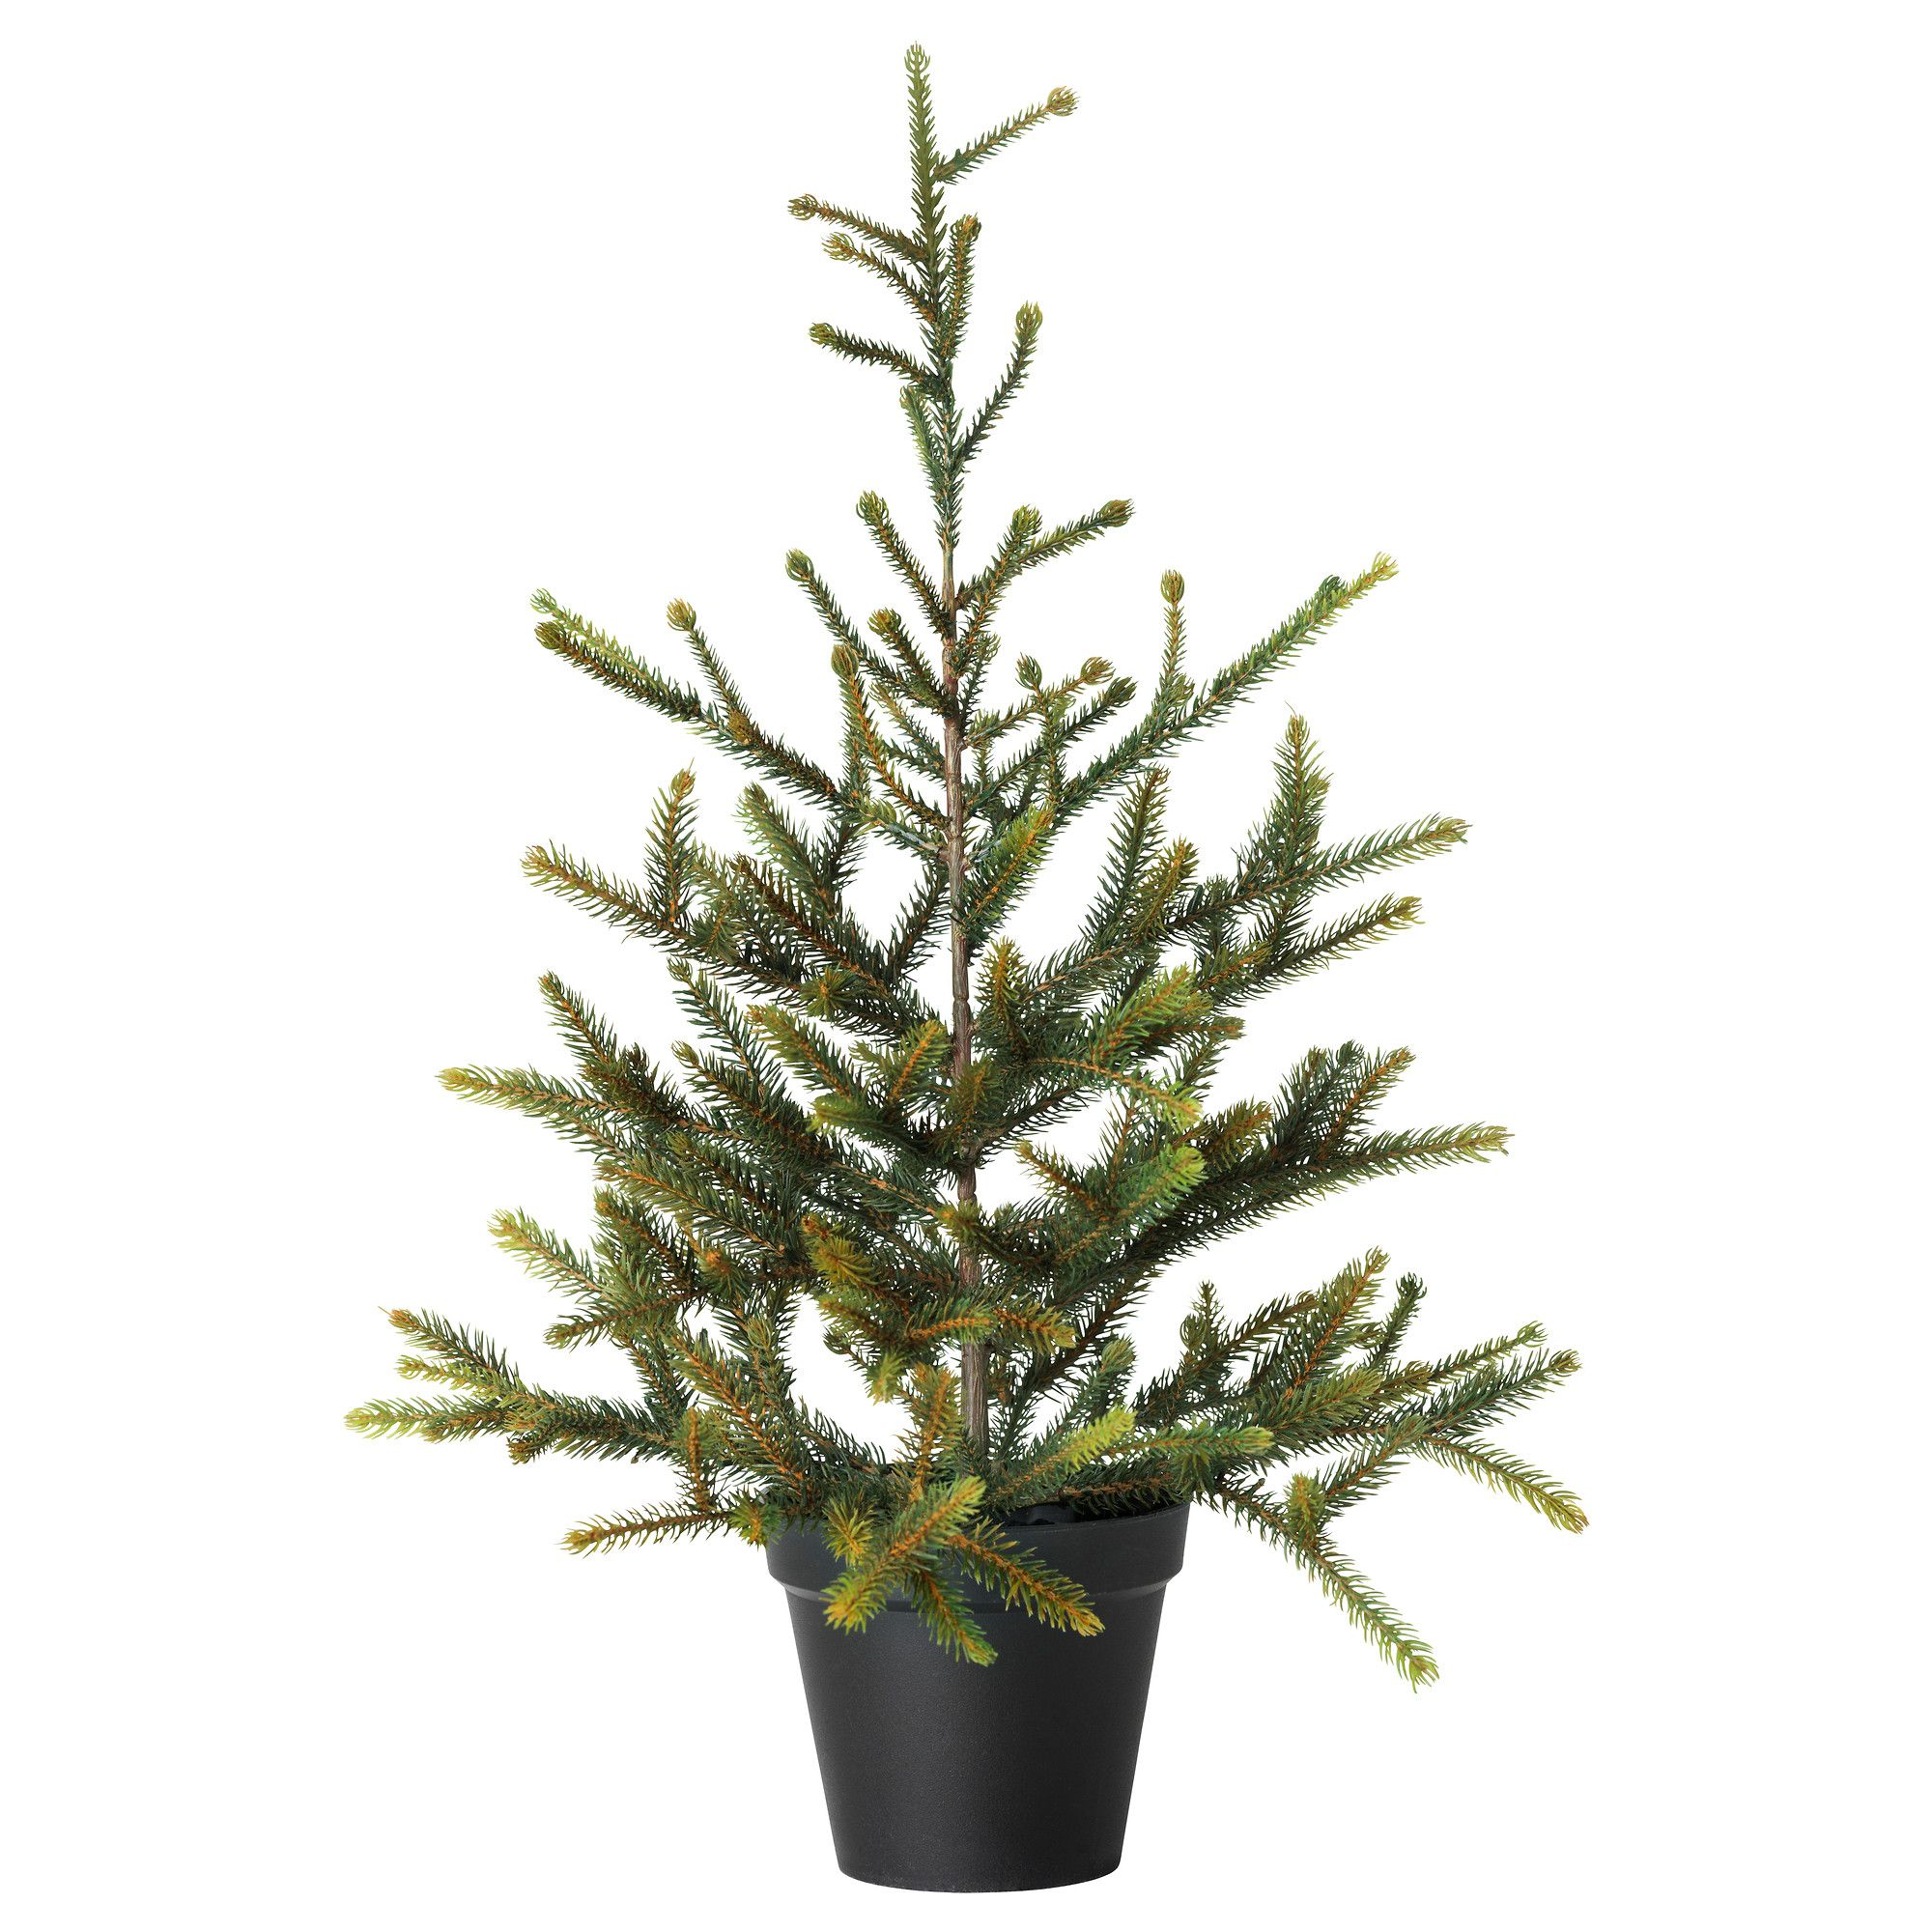 Stores That Sell Artificial Christmas Trees